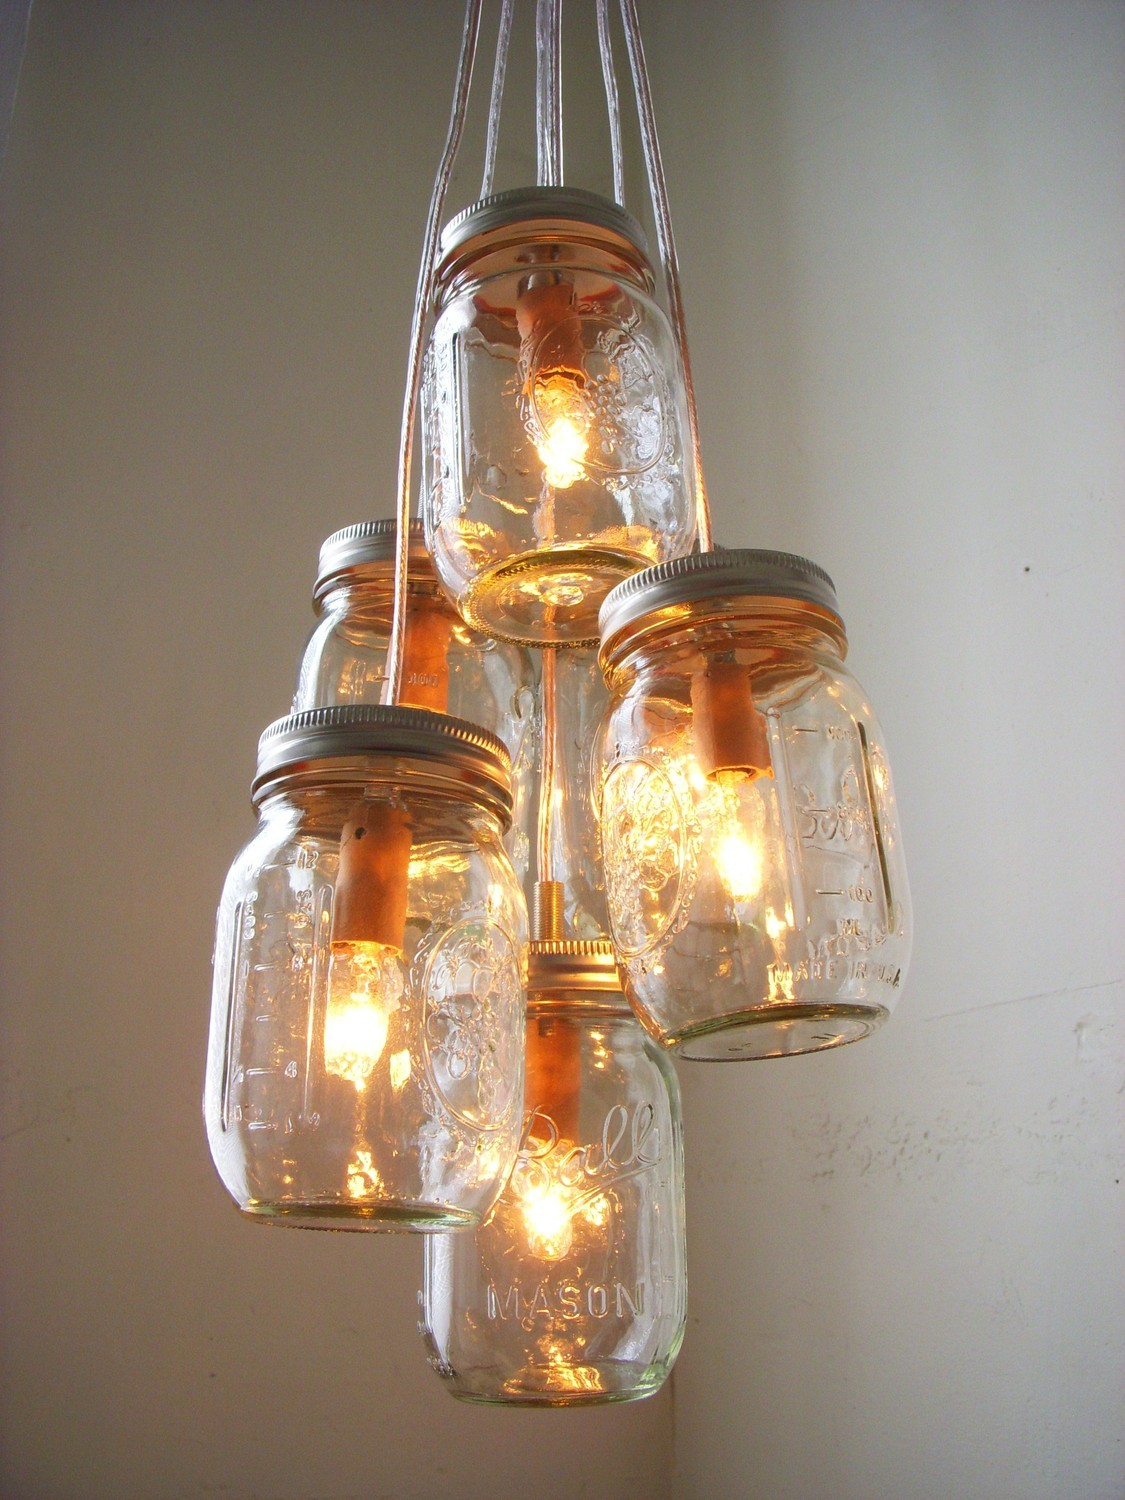 mason-jar-lighting